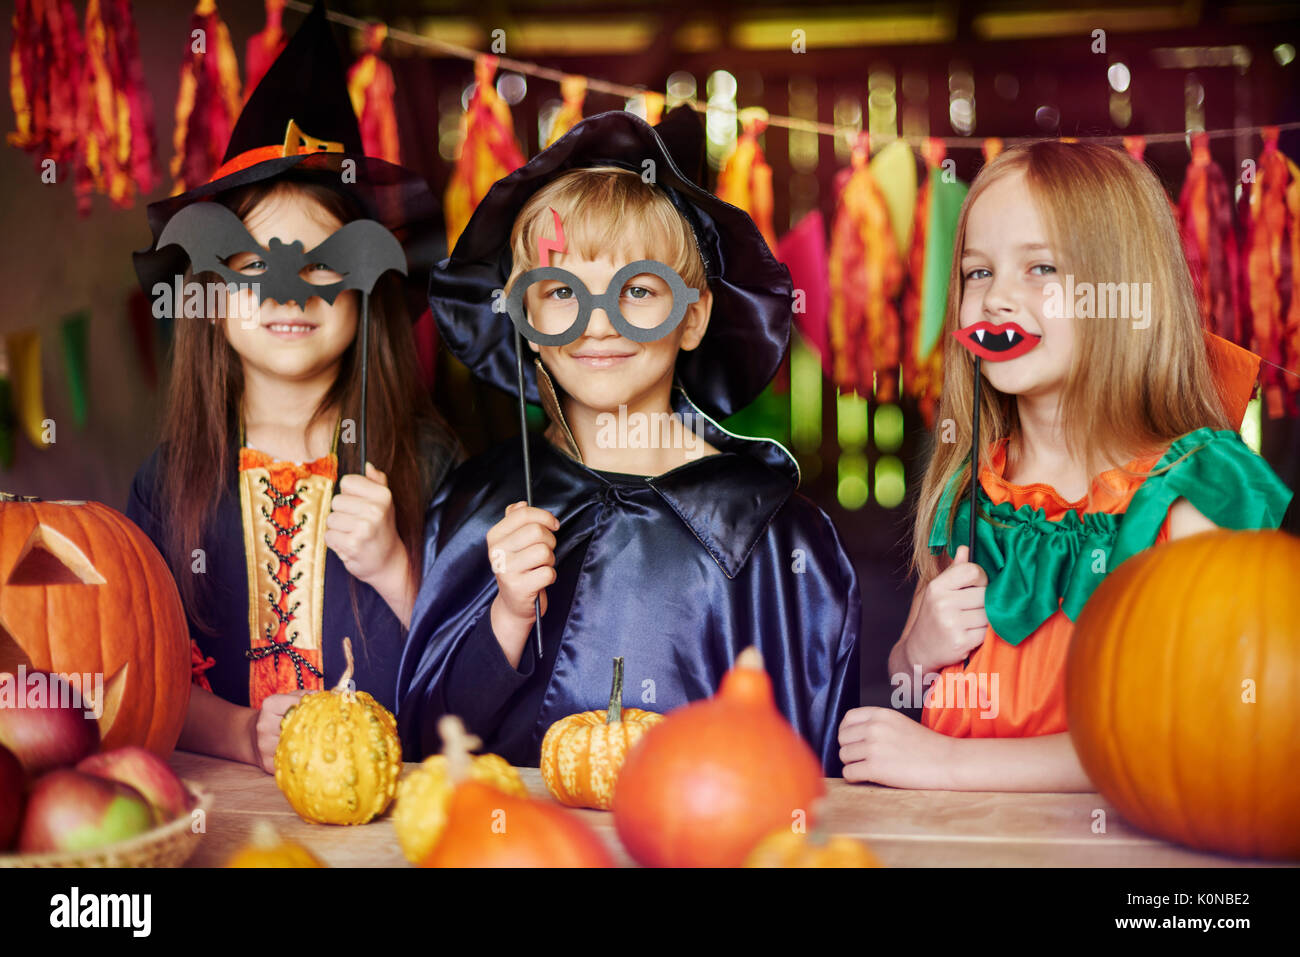 Dressing up is children's favorite game - Stock Image